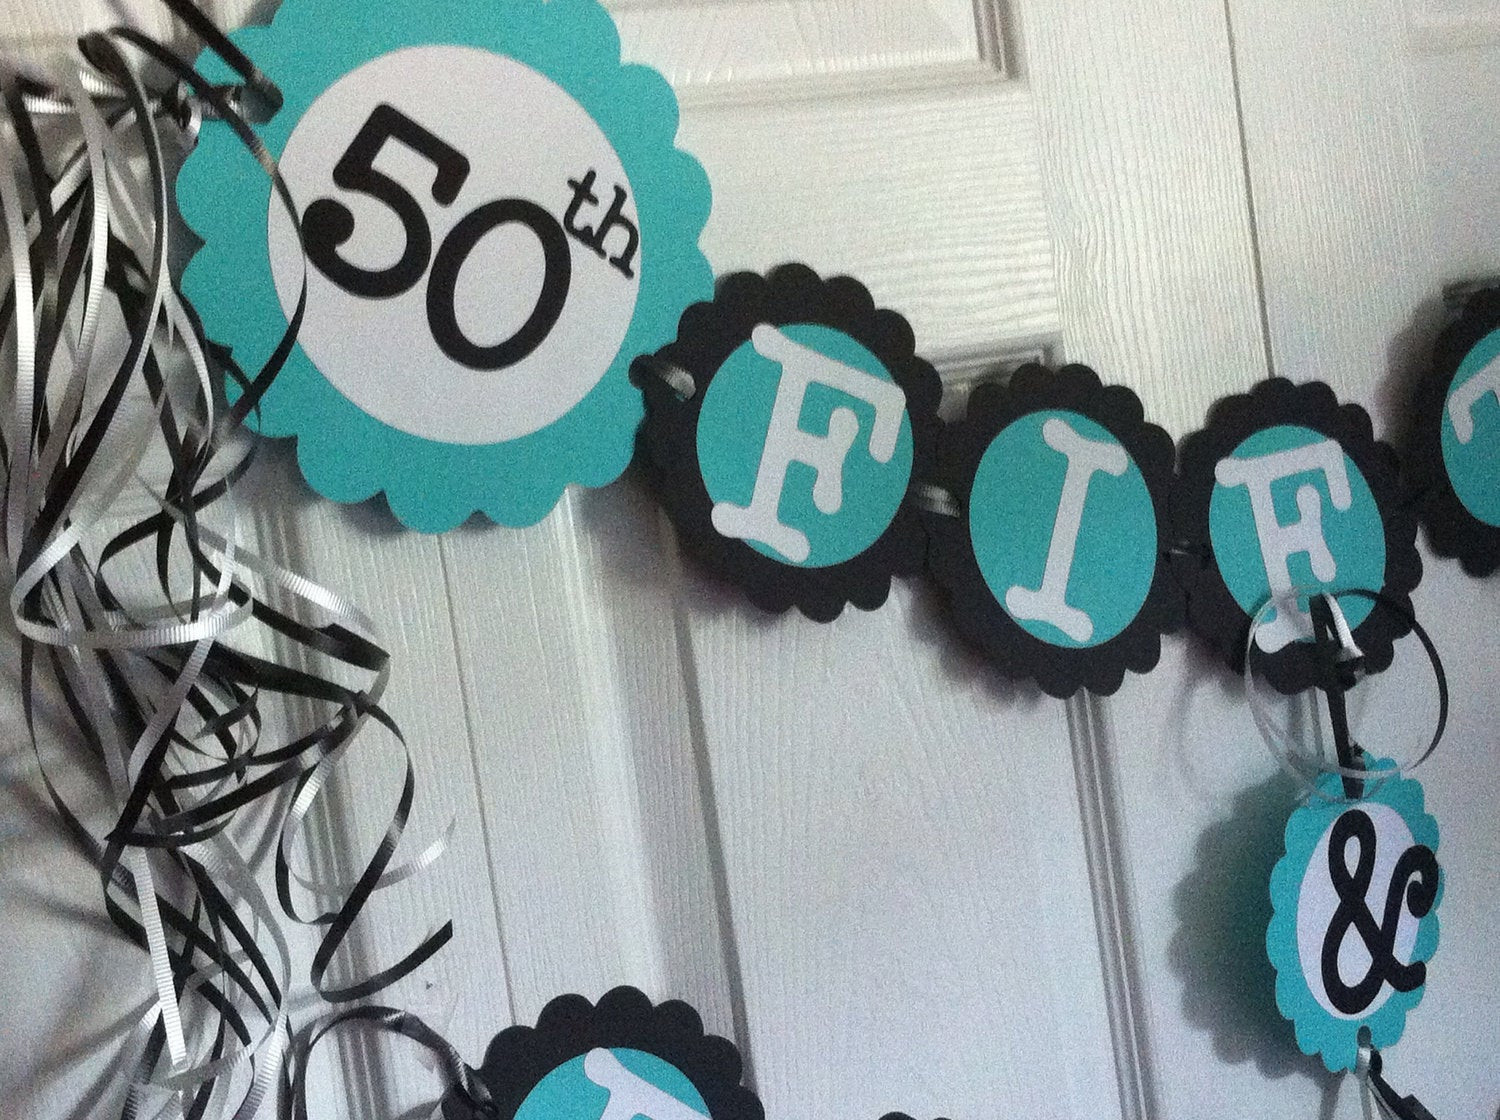 Best ideas about 50th Birthday Decorations For Him . Save or Pin 50th Birthday Decorations Party Banner 50 & Fabulous Now.